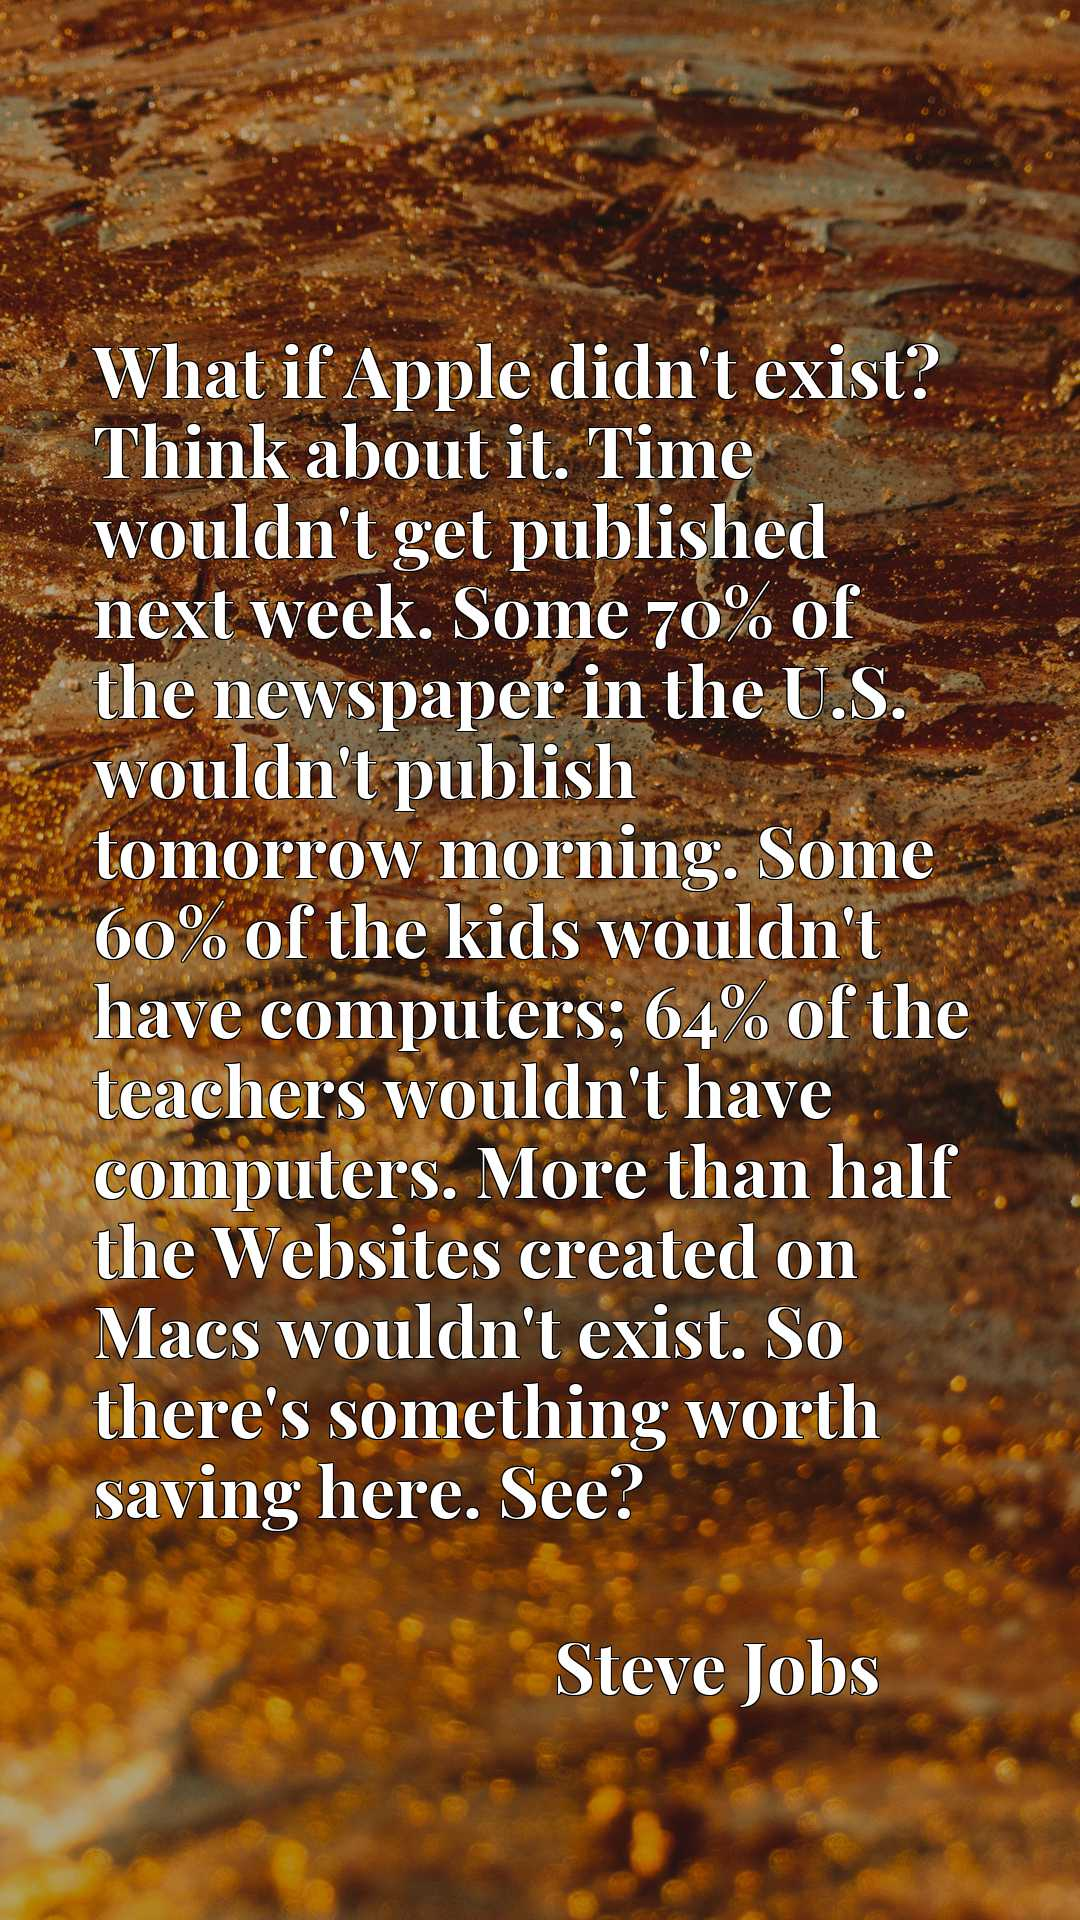 What if Apple didn't exist? Think about it. Time wouldn't get published next week. Some 70% of the newspaper in the U.S. wouldn't publish tomorrow morning. Some 60% of the kids wouldn't have computers; 64% of the teachers wouldn't have computers. More than half the Websites created on Macs wouldn't exist. So there's something worth saving here. See?